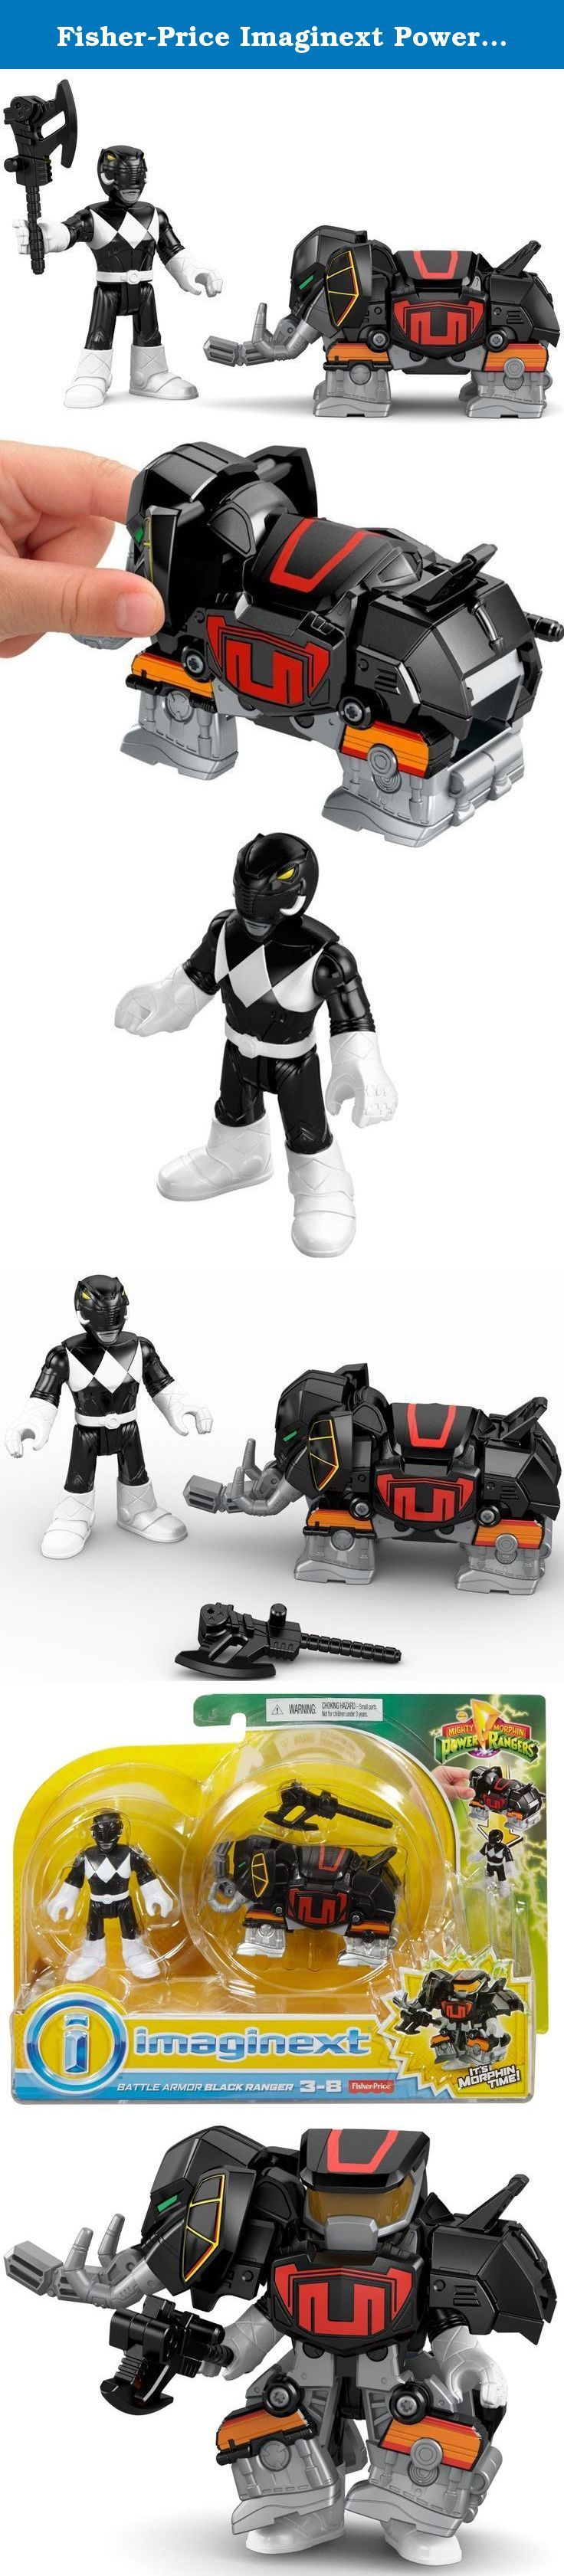 18 best imaginext images on pinterest fisher price power